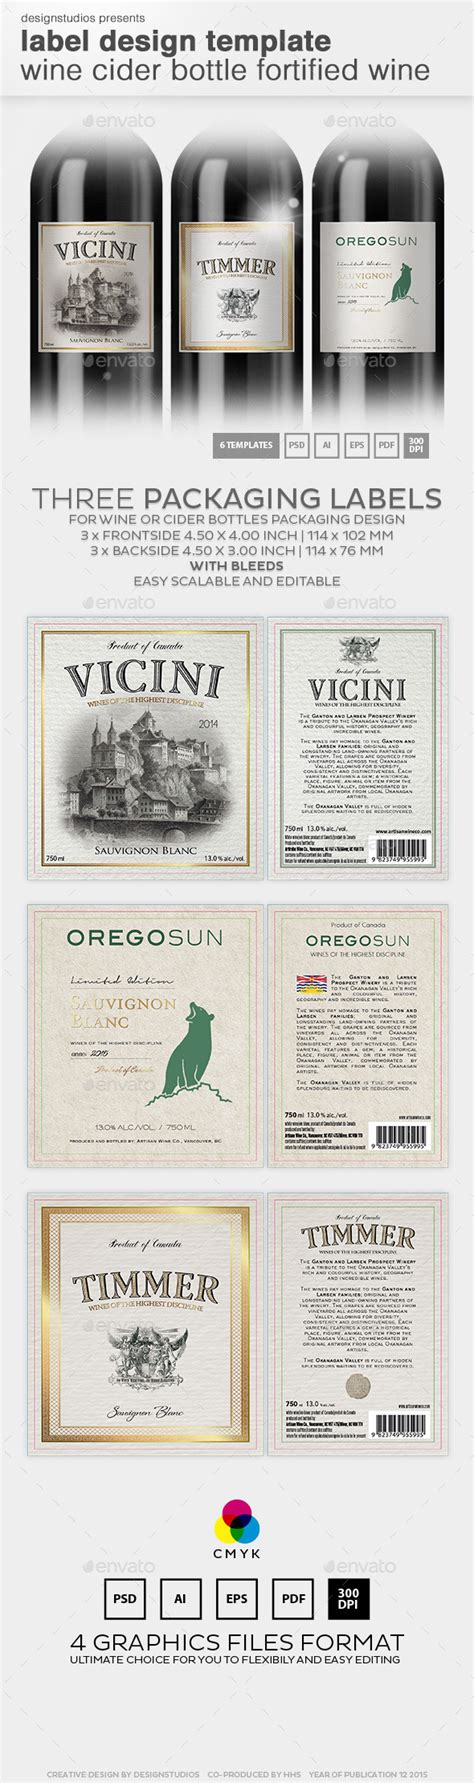 bottle label design templates label design template wine cider bottle by designstudios